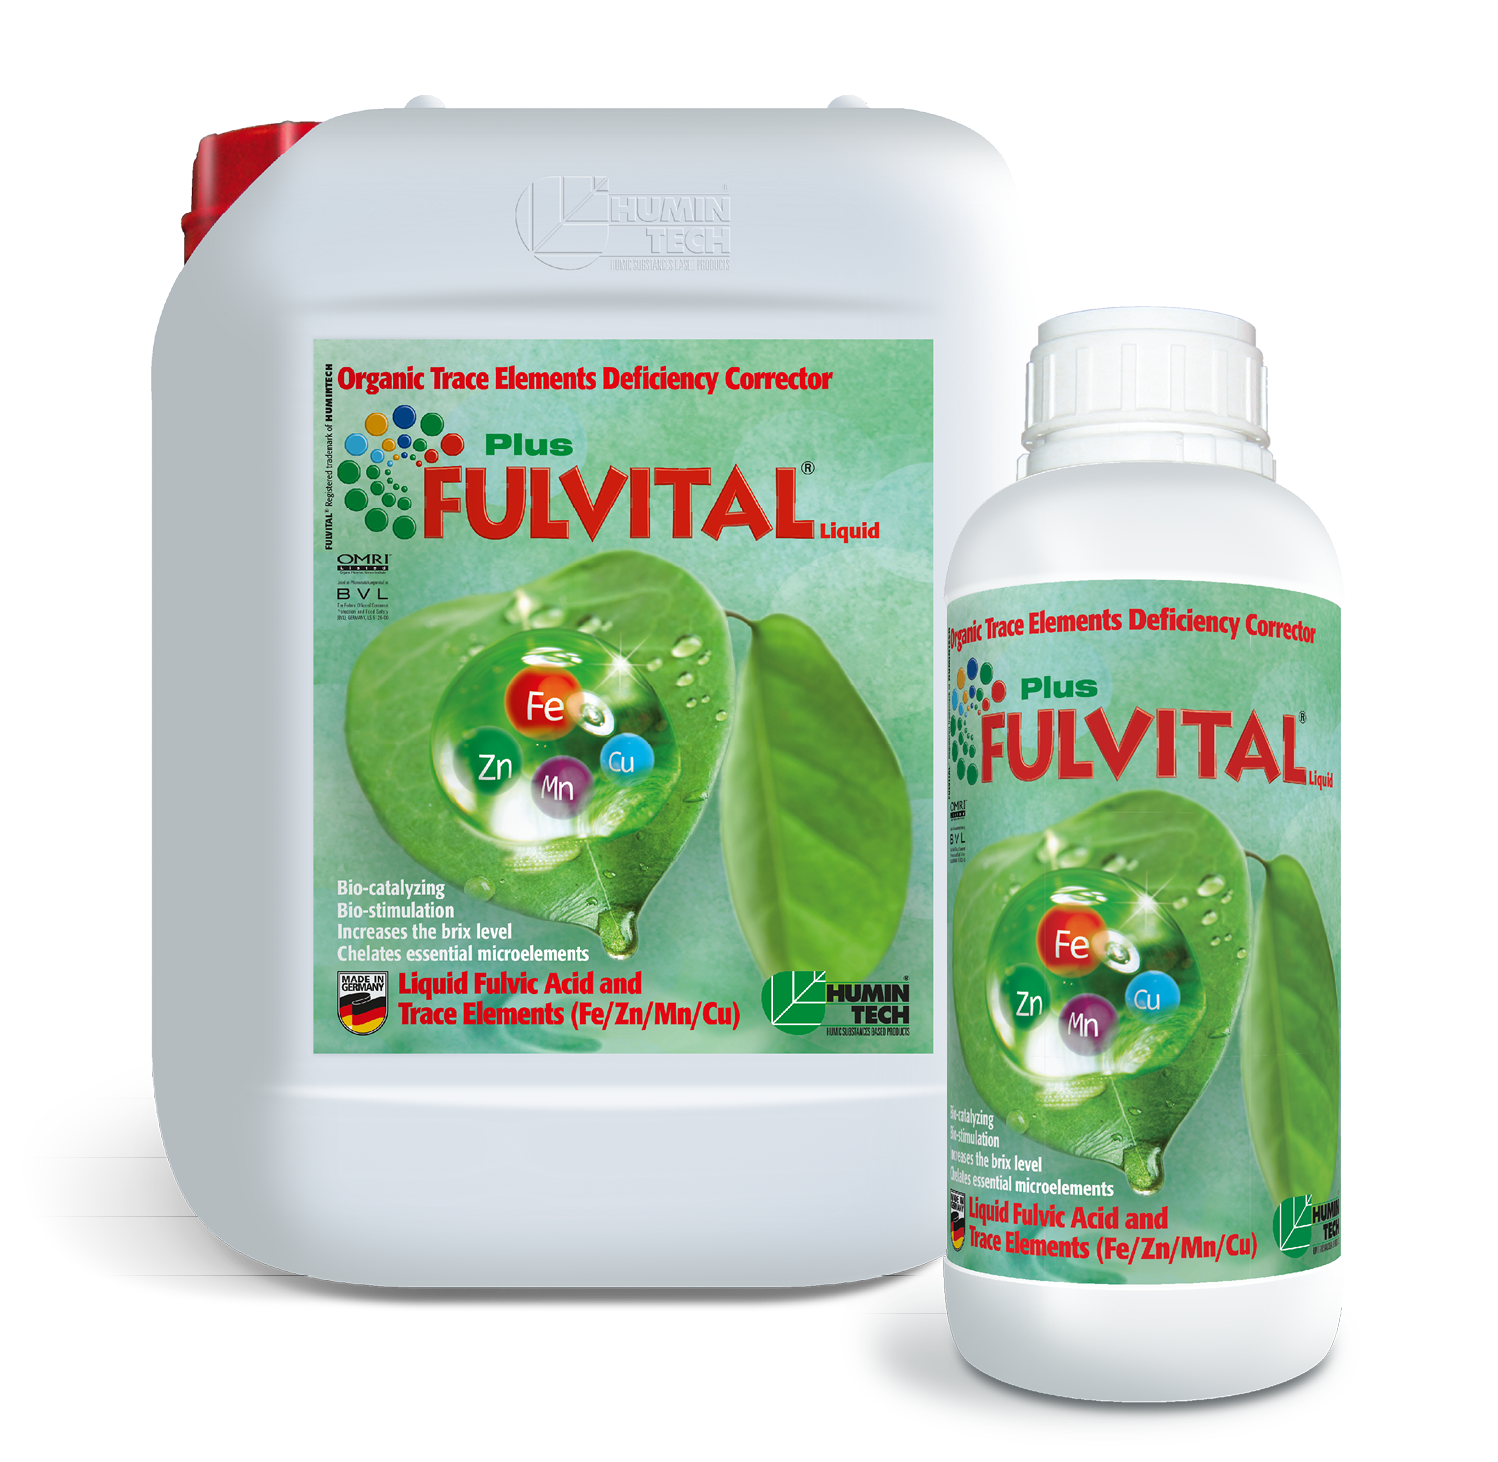 FULVITAL Plus Liquid Organic Micronutrient Deficiency Corrector Liquid Fulvates and Micronutrients (Fe/ Zn/ Mn/ Cu)